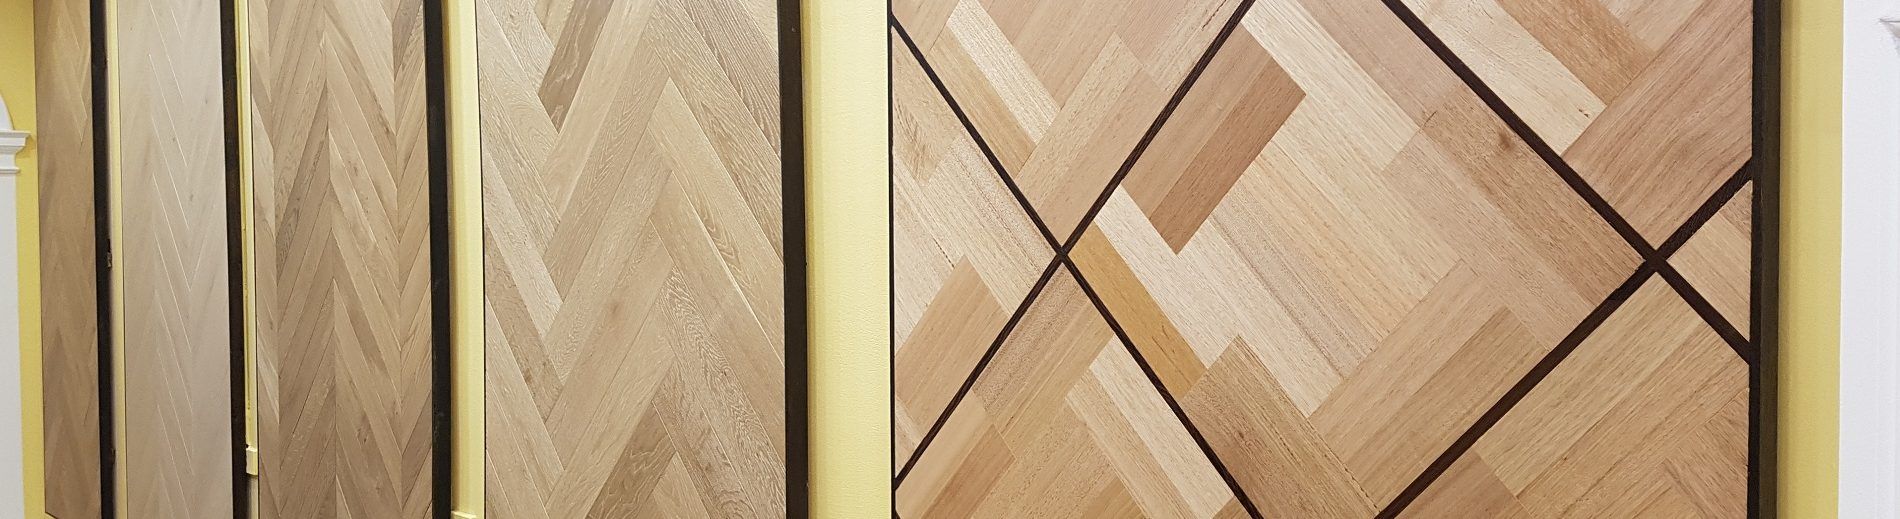 Different types of parquetry